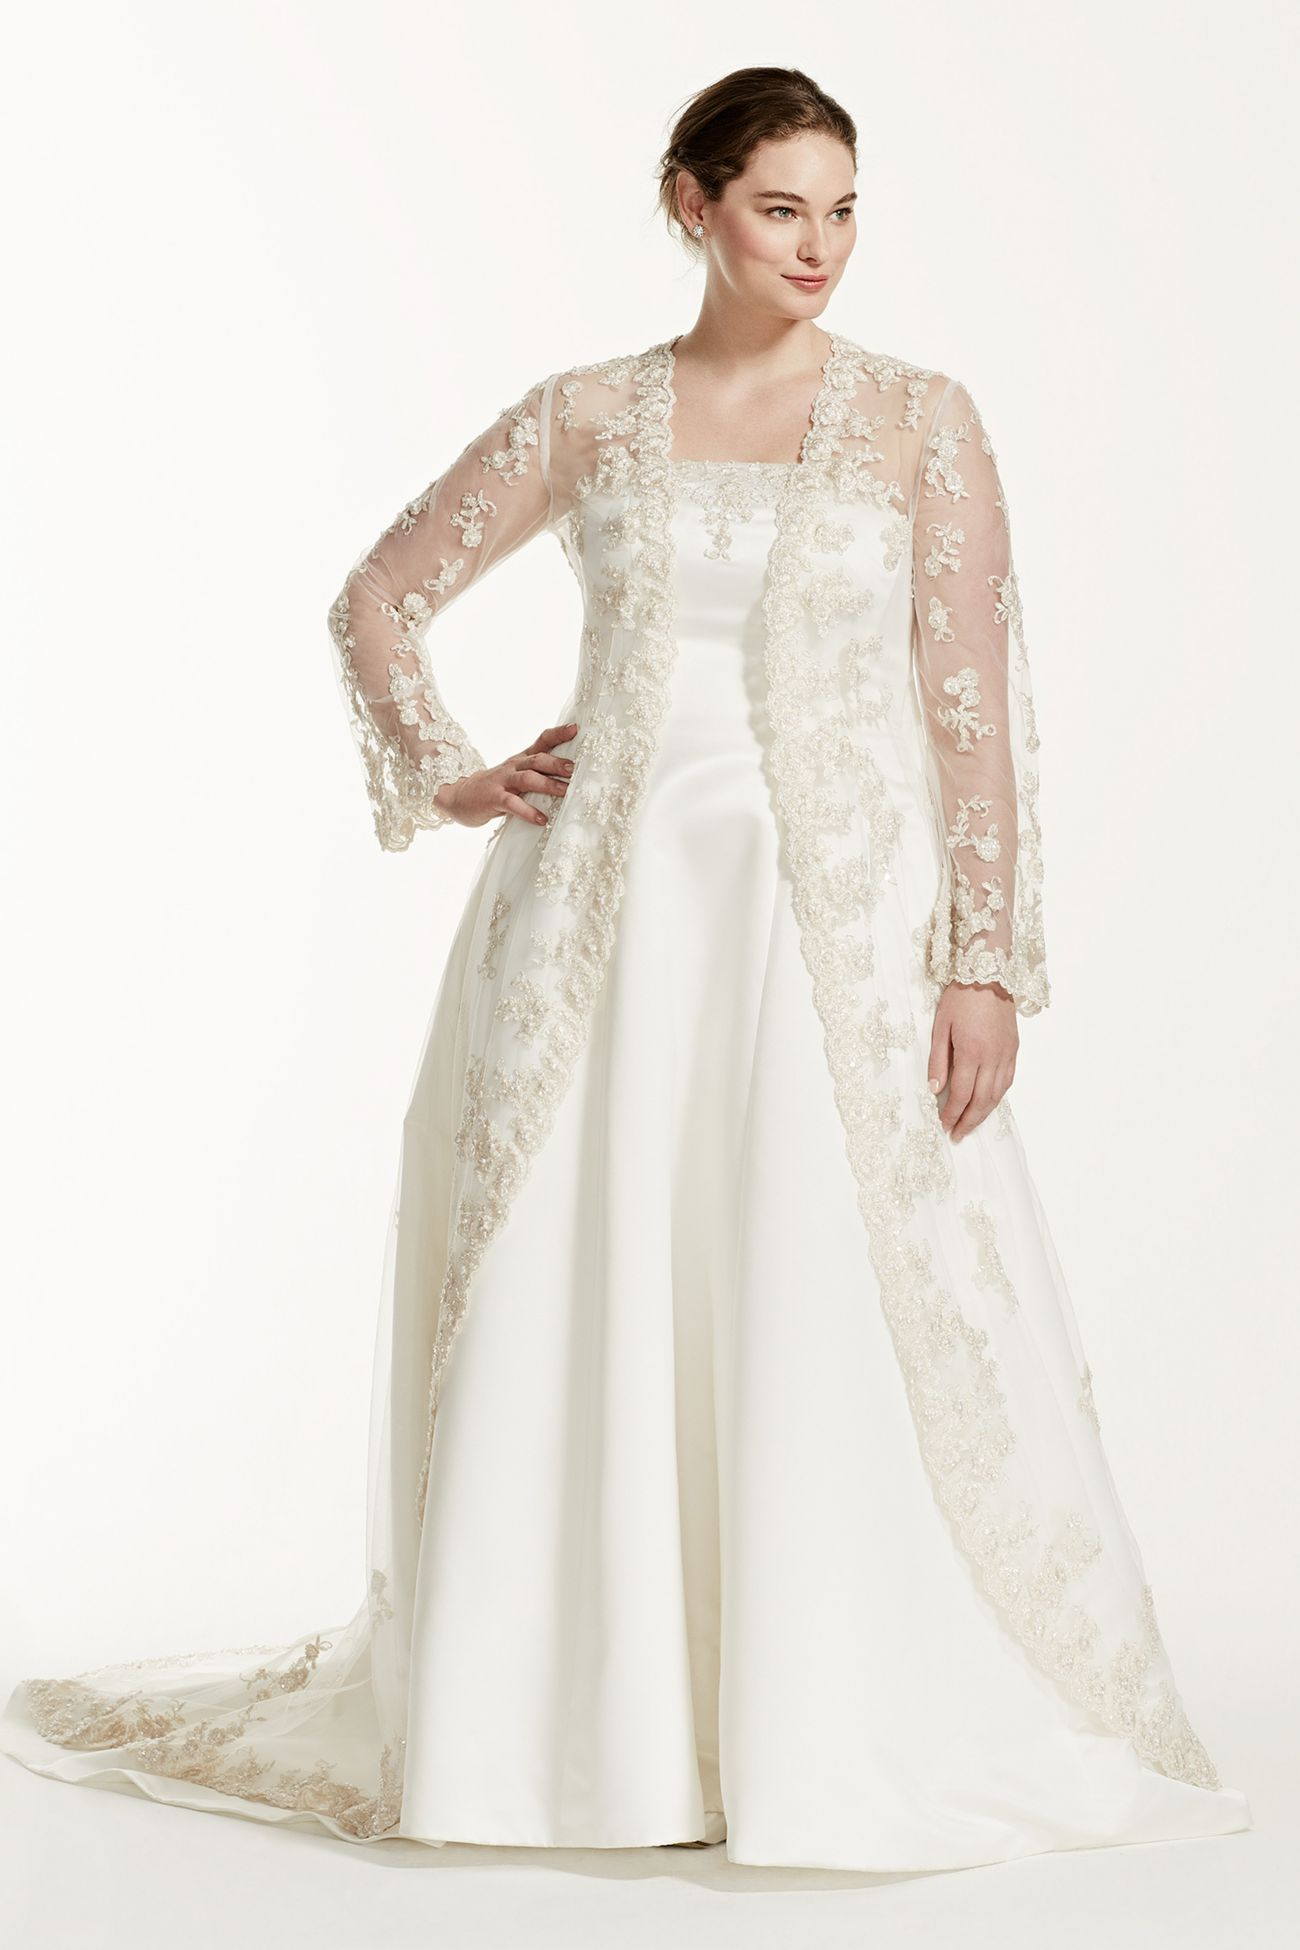 Plus Size Wedding Dress with Beaded Lace Jacket A line